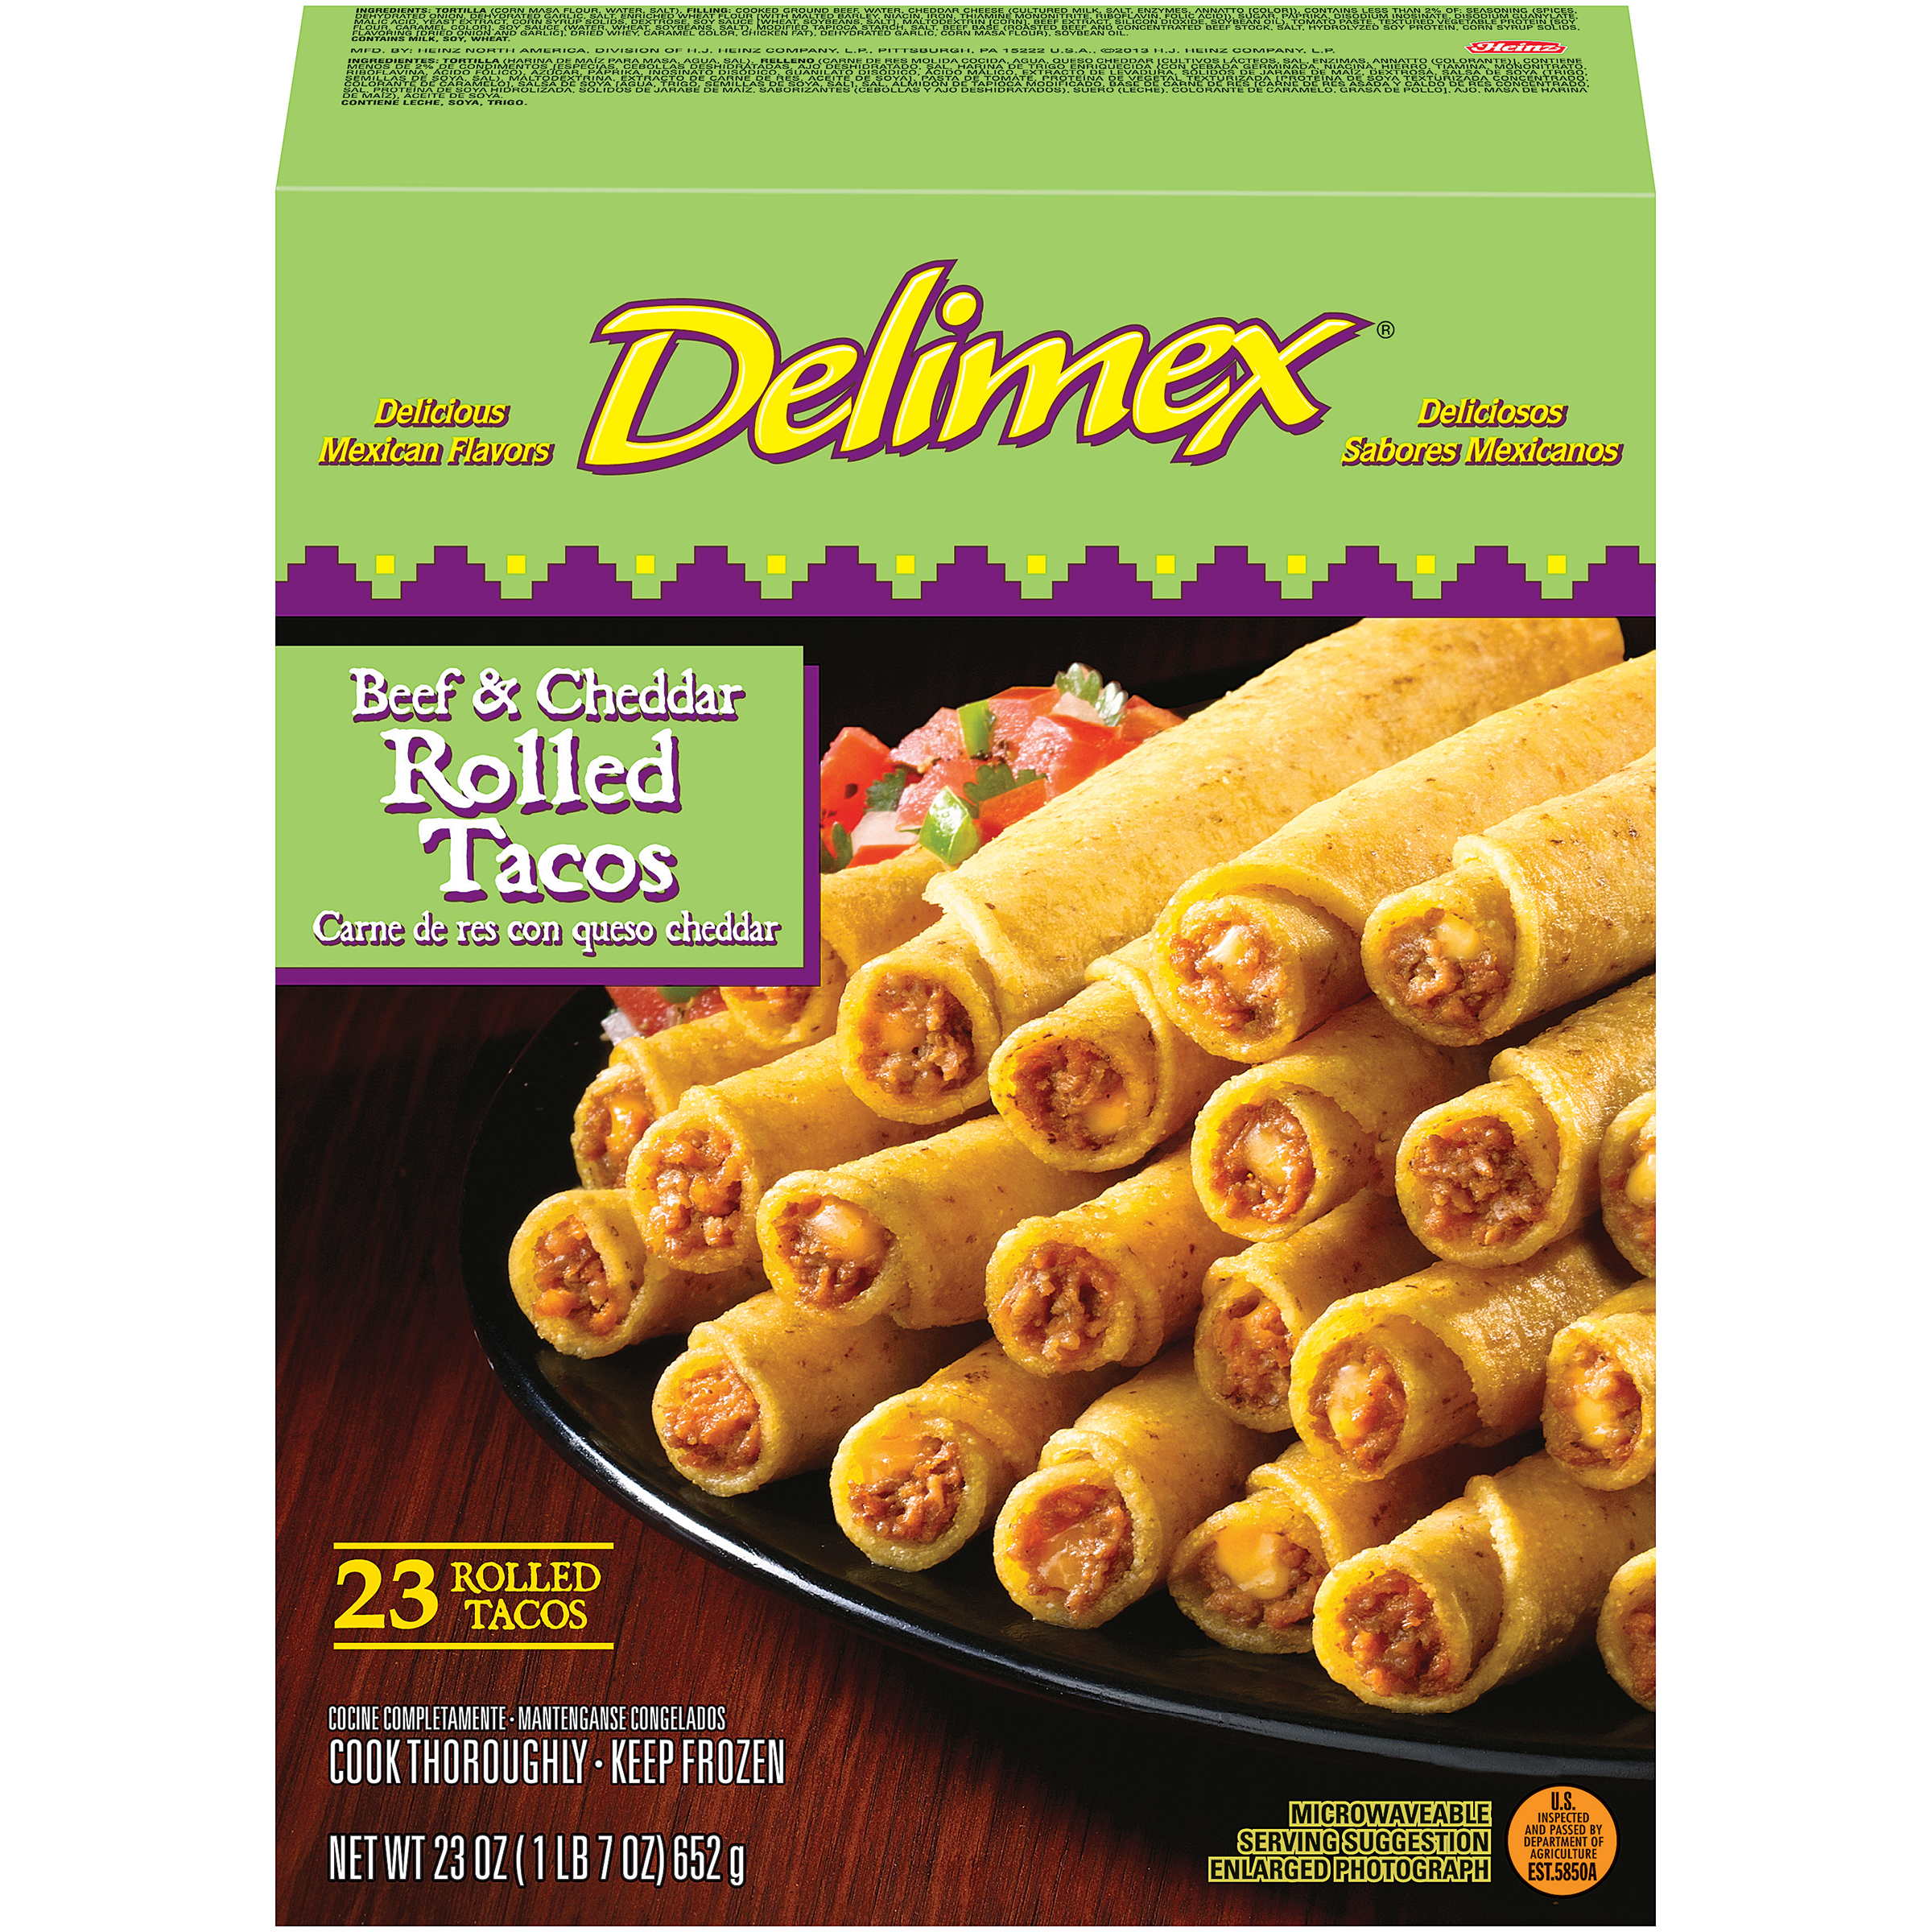 BEEF & CHEDDAR ROLLED TACOS 23 pc